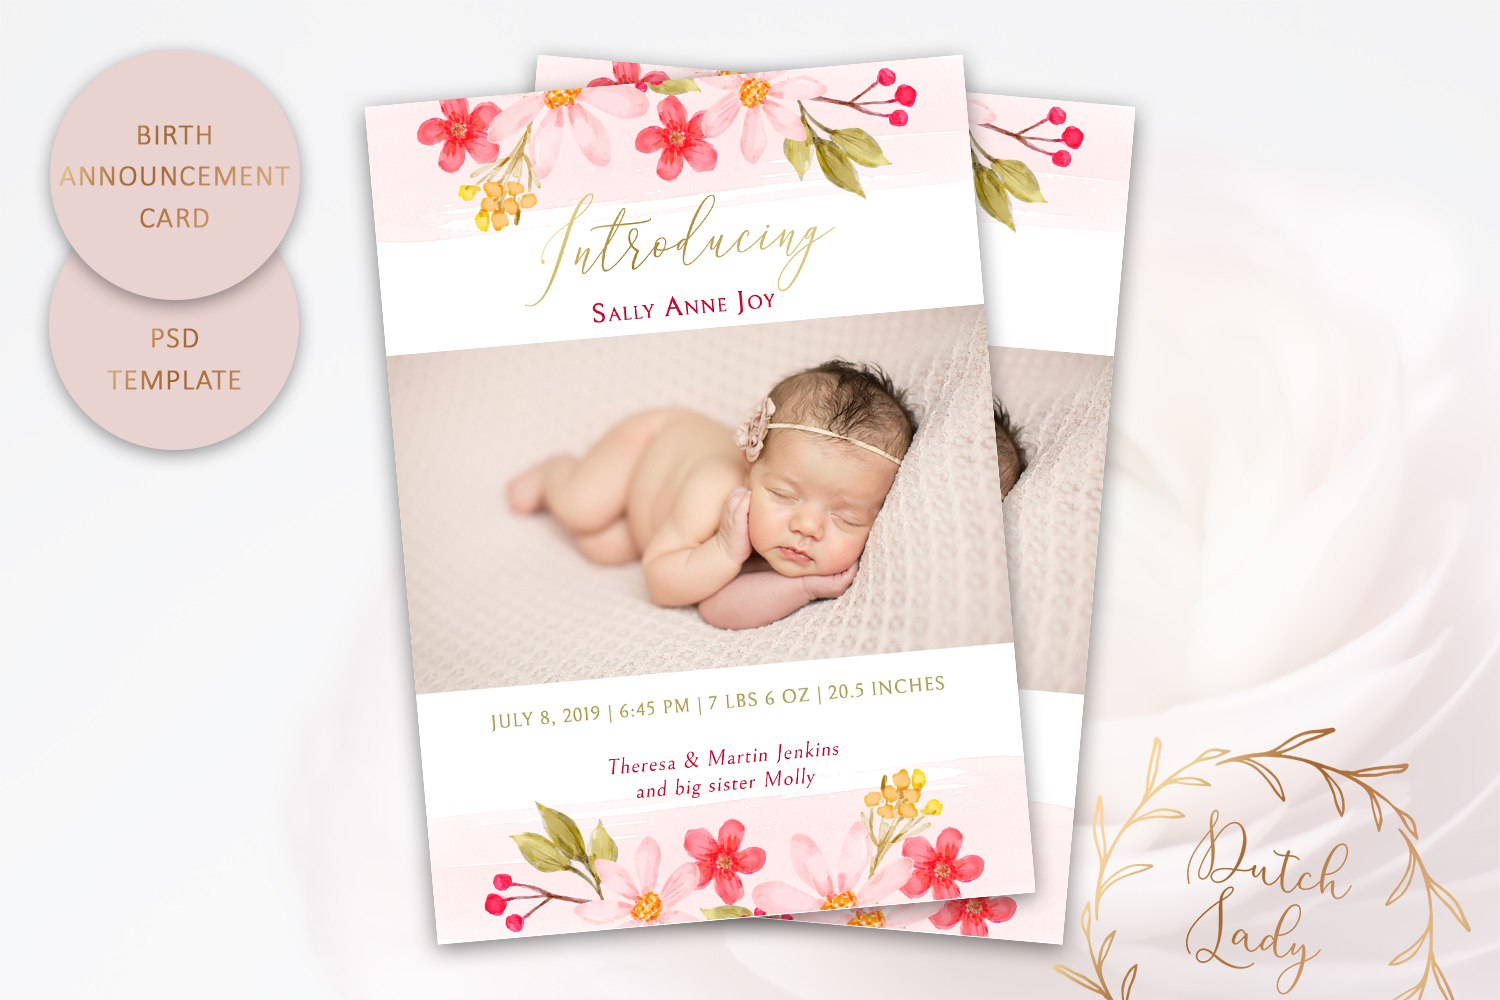 PSD Birth Announcement Card Template - Design #5 example image 1